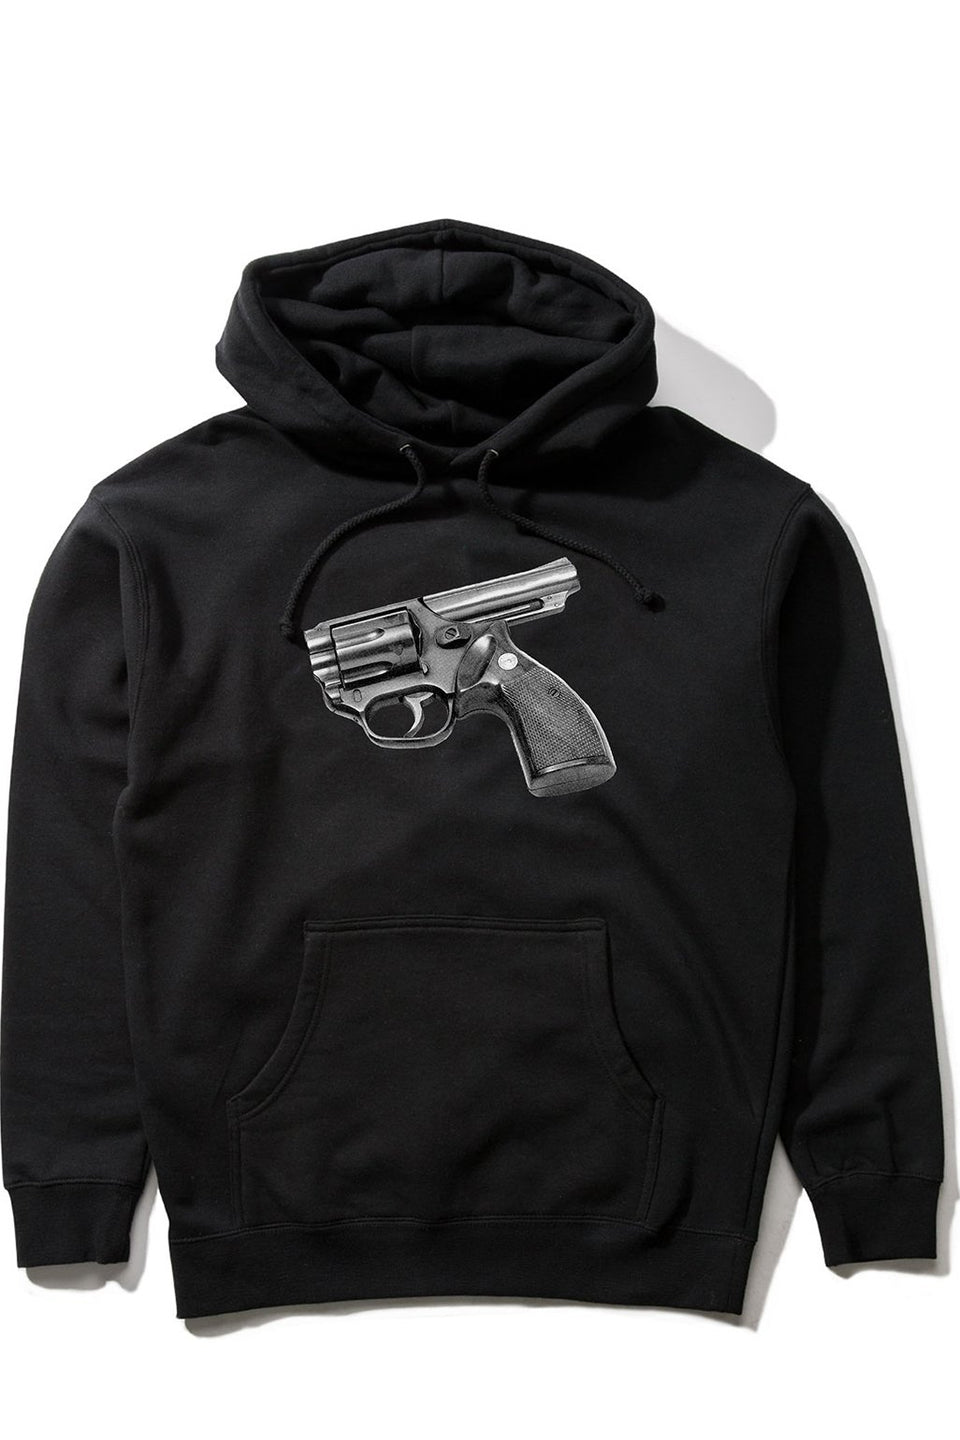 Self-Offense Pullover Hoodie